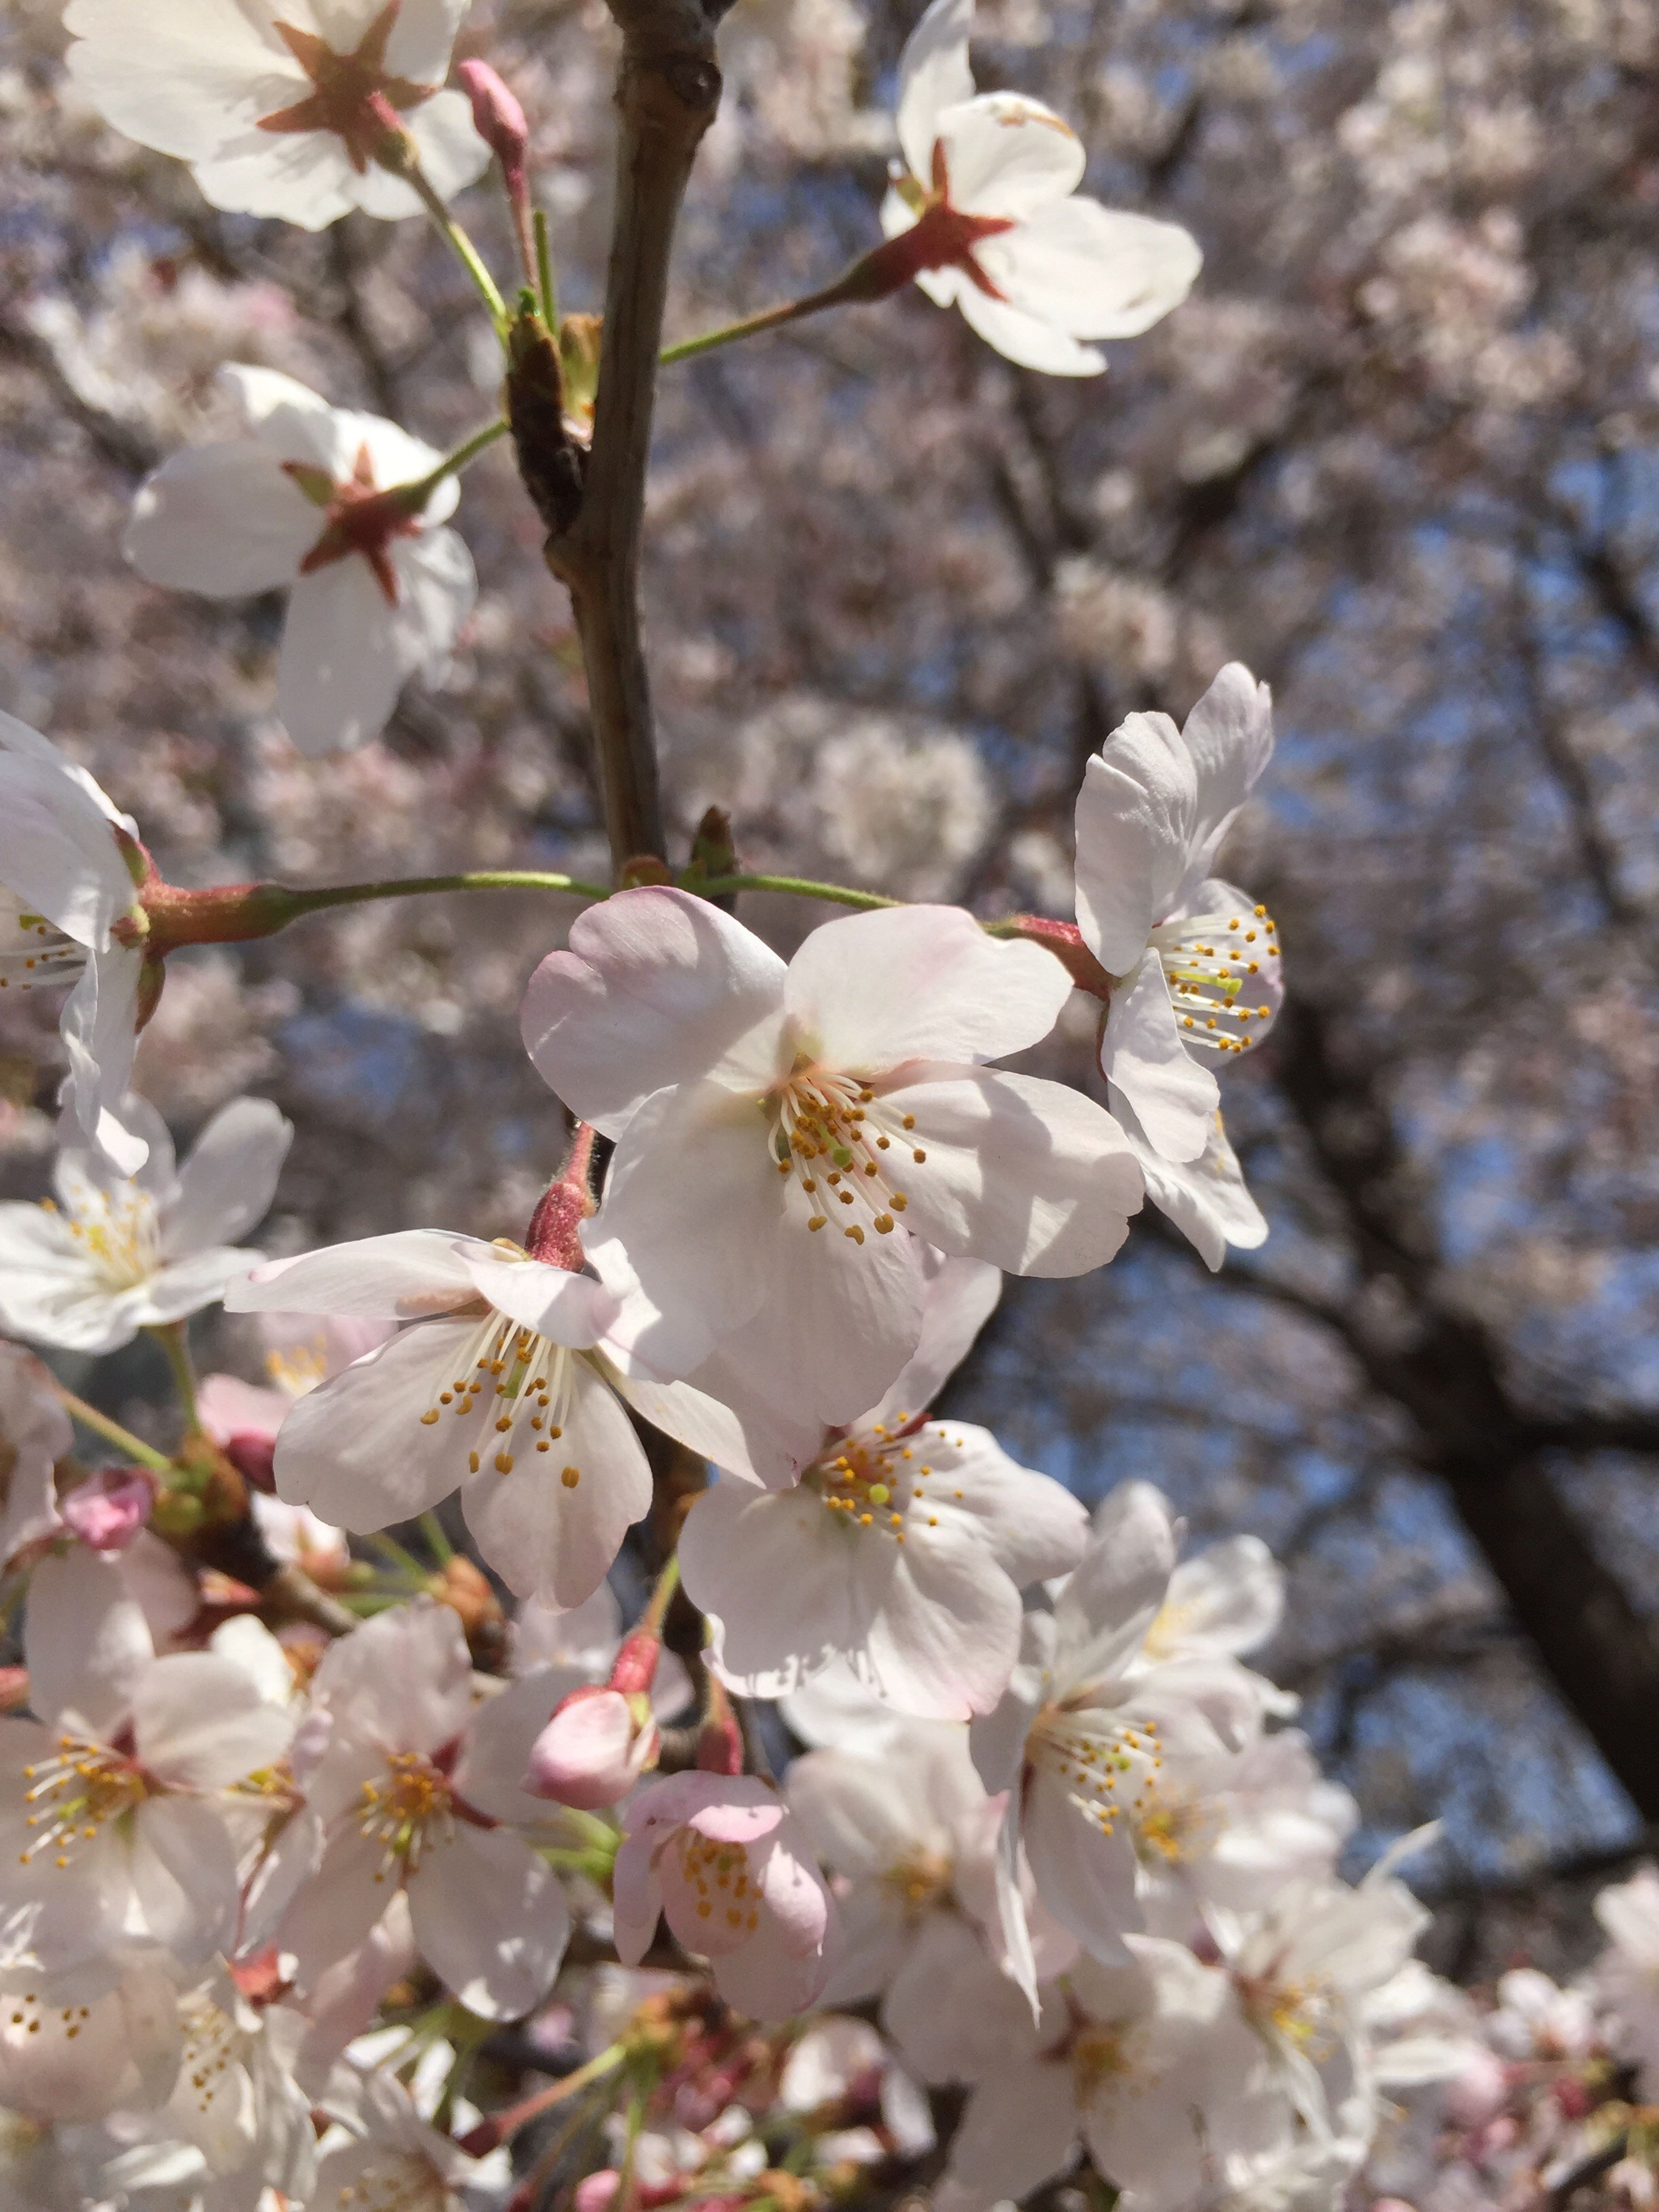 flower, freshness, branch, growth, fragility, cherry blossom, tree, white color, cherry tree, beauty in nature, blossom, petal, nature, focus on foreground, in bloom, twig, close-up, fruit tree, blooming, apple blossom